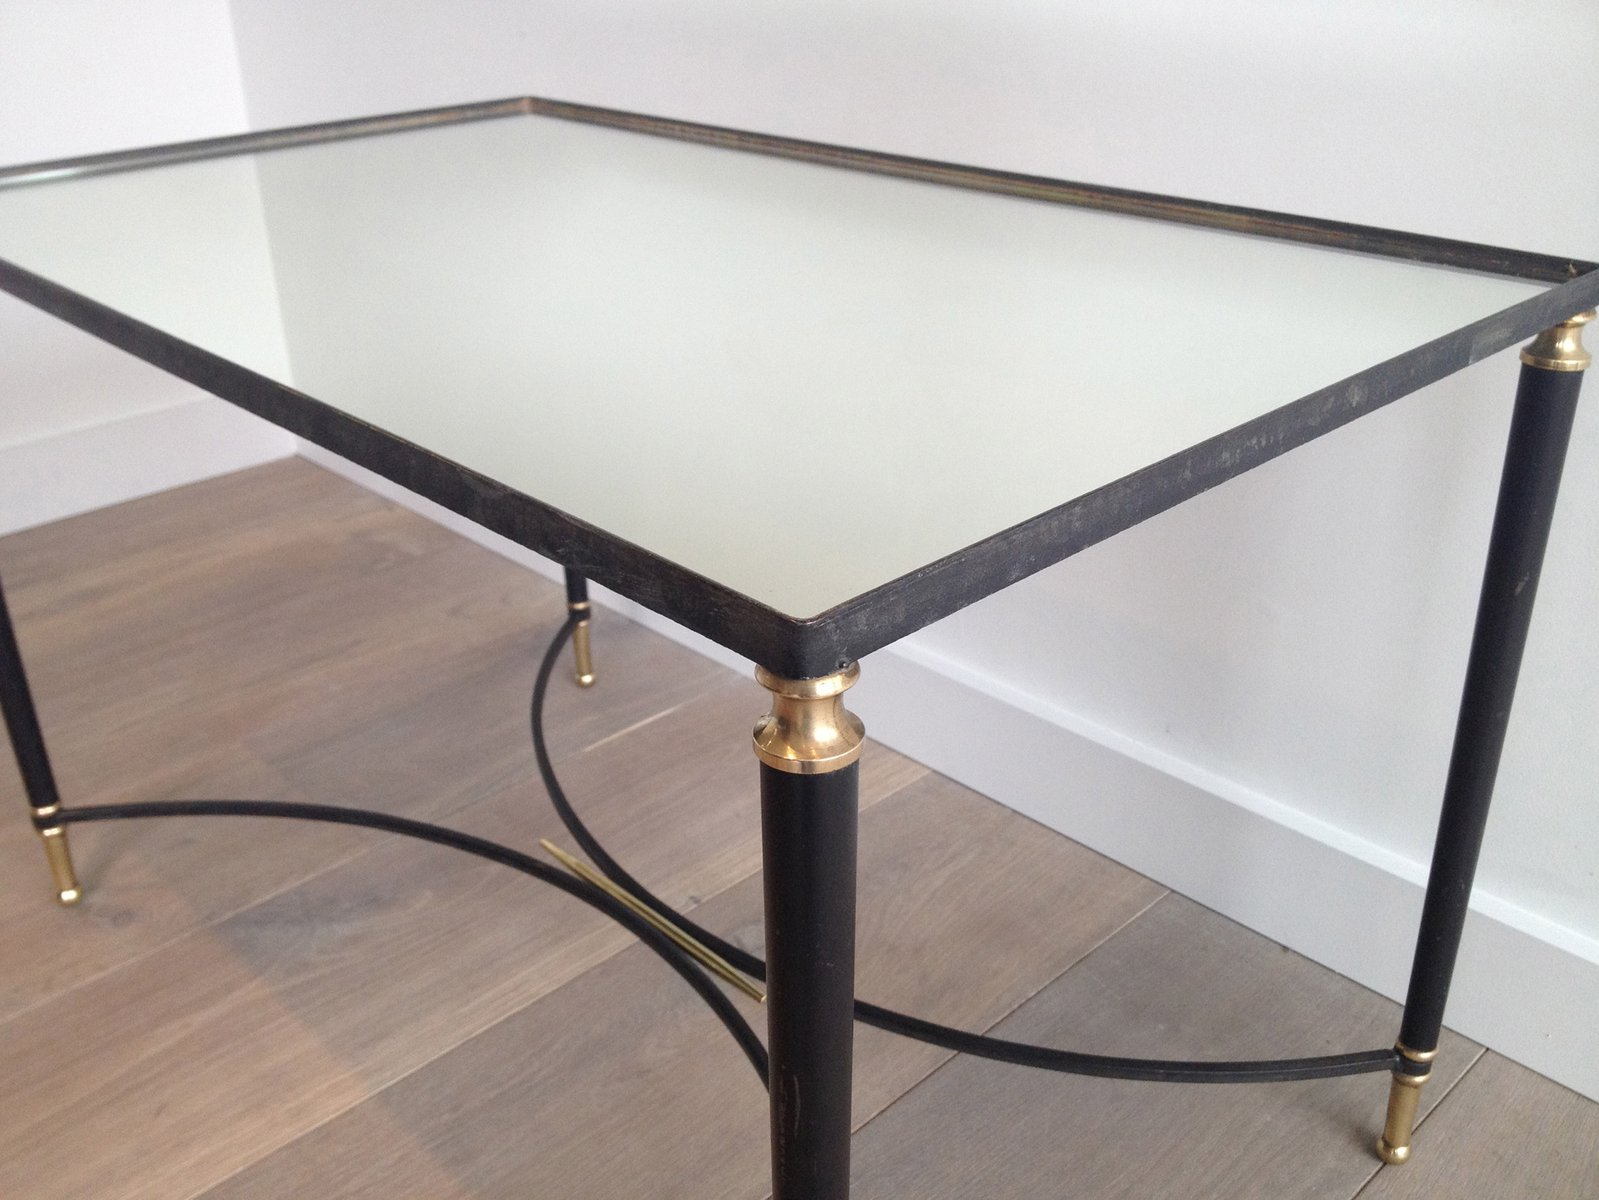 Black Lacquered Metal and Brass Coffee Table 1950s for sale at Pamono